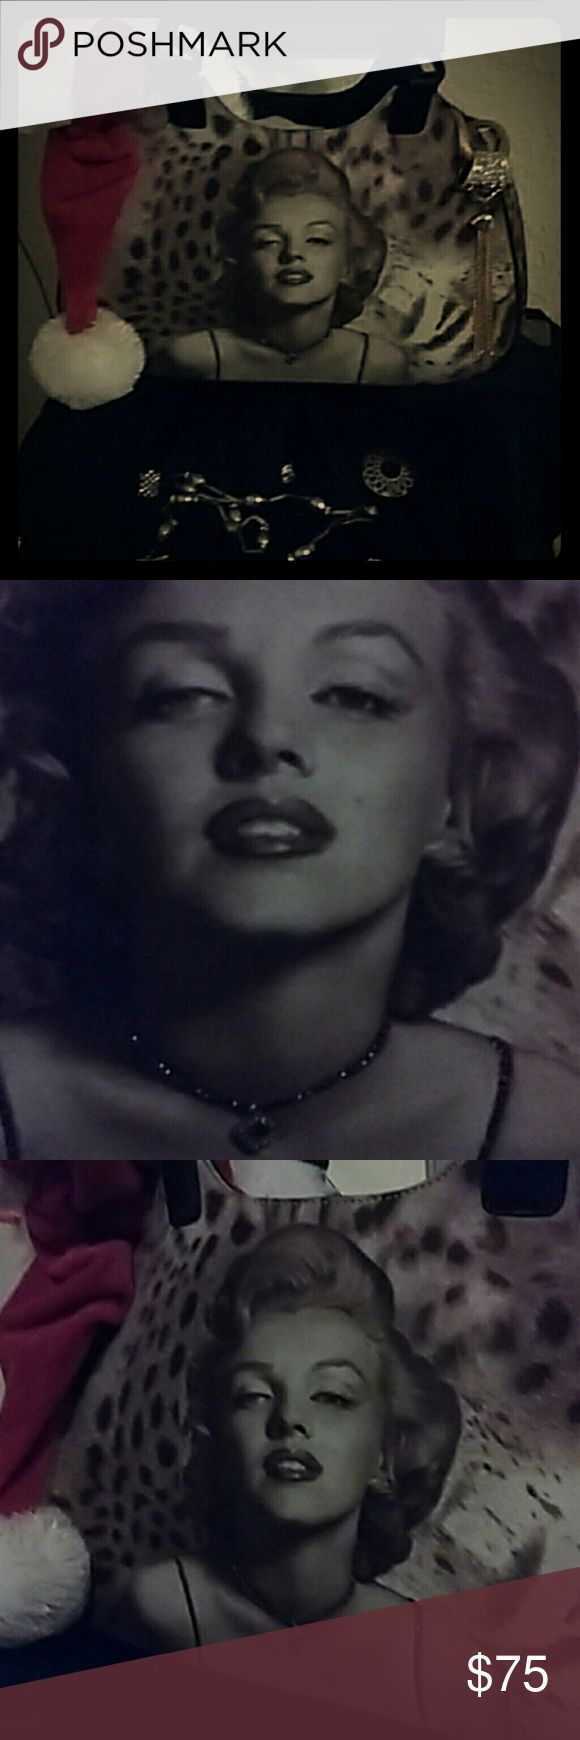 Purse NWOT Original Marilyn Monroe Rhinestone tailored necklace & spaghetti straps.  Soft woven Leopard tote bag, with leather strapped handles, never used, clean inside and out. & Other Stories Bags Totes